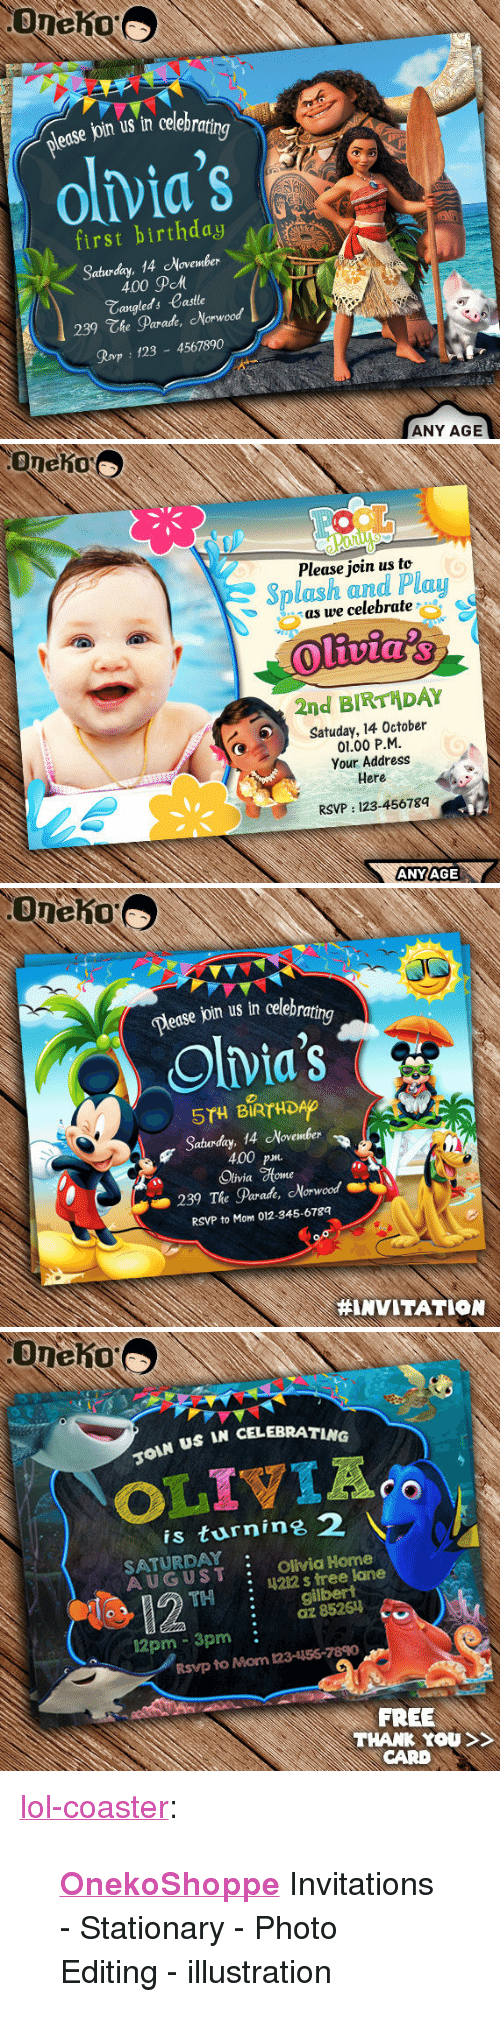 """invitations: edse join us in celebra  olvia's  first birthday  Sabuday, 14 November  \  400 дем  Tangleds Castle  239 The Parade, Norwood  Rovp 123 4567890  ANY AGE   Oneho  Please join us to  Splash and Plau  as we celebrate  2nd BIRTHDAY  Satuday, 14 October  01.00 P.M  Your Address  Here  RSVP: 123-45678q  ANYAGE   Dease join us in celebra  ing  Olvia's  5TH BIRTHDAO  Saturday, 14 November  400 p  Olivia %one  239 The Parade, Morwood  RSVP to Mom 012-345-6789  #INVITATION   US IN CELEBRATING  is turnine 2  SATURDAY  AUGUST Olivia Home  : 4212 s tree lane  THgilbert  :az 85261  12pm 3pm:  Rsvp to Mom 123-156-7890  FREE  THANK YOU  CARD <p><a href=""""http://lol-coaster.tumblr.com/post/161981484442/onekoshoppe-invitations-stationary-photo"""" class=""""tumblr_blog"""">lol-coaster</a>:</p><blockquote><p><b><a href=""""https://www.etsy.com/shop/OnekoShoppe"""">  OnekoShoppe</a></b> Invitations - Stationary - Photo Editing - illustration</p></blockquote>"""